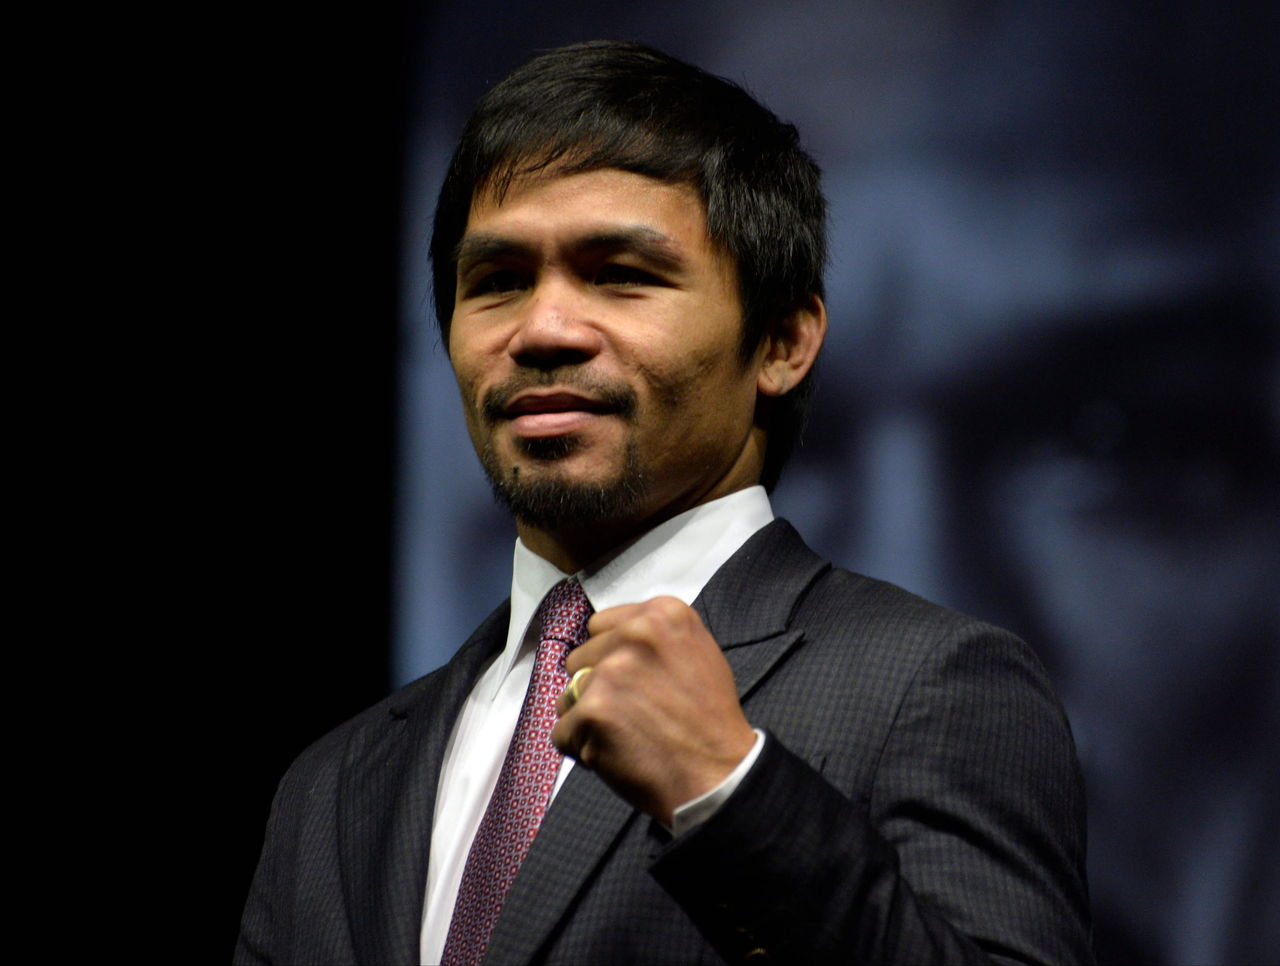 pacquiao refuses to back down on gay slurs saying god is on my side